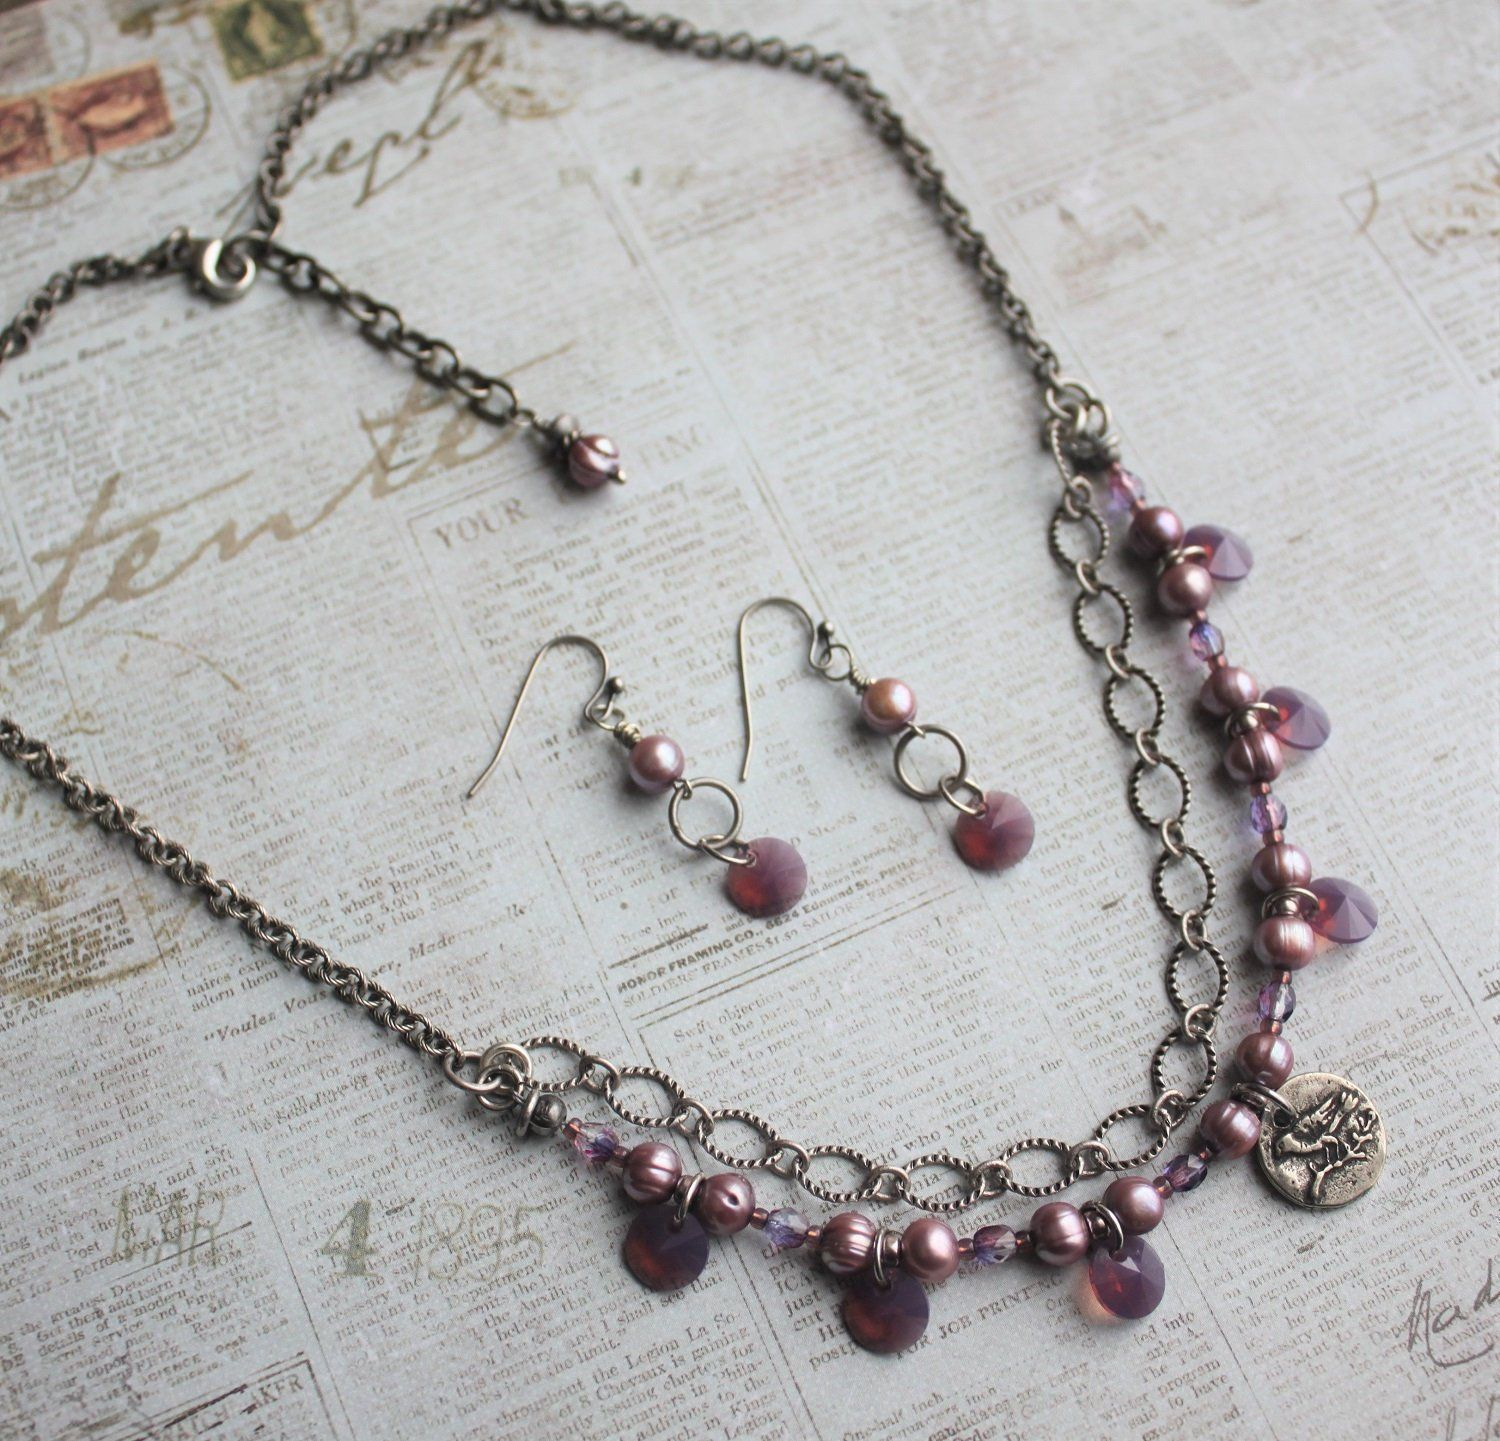 a5af4437edec Rustic Romantic Purple Dangle Necklace Swarovski Crystal and Pearl Necklace  Bird Charm Necklace Shabby Chic Necklace Gift For Her